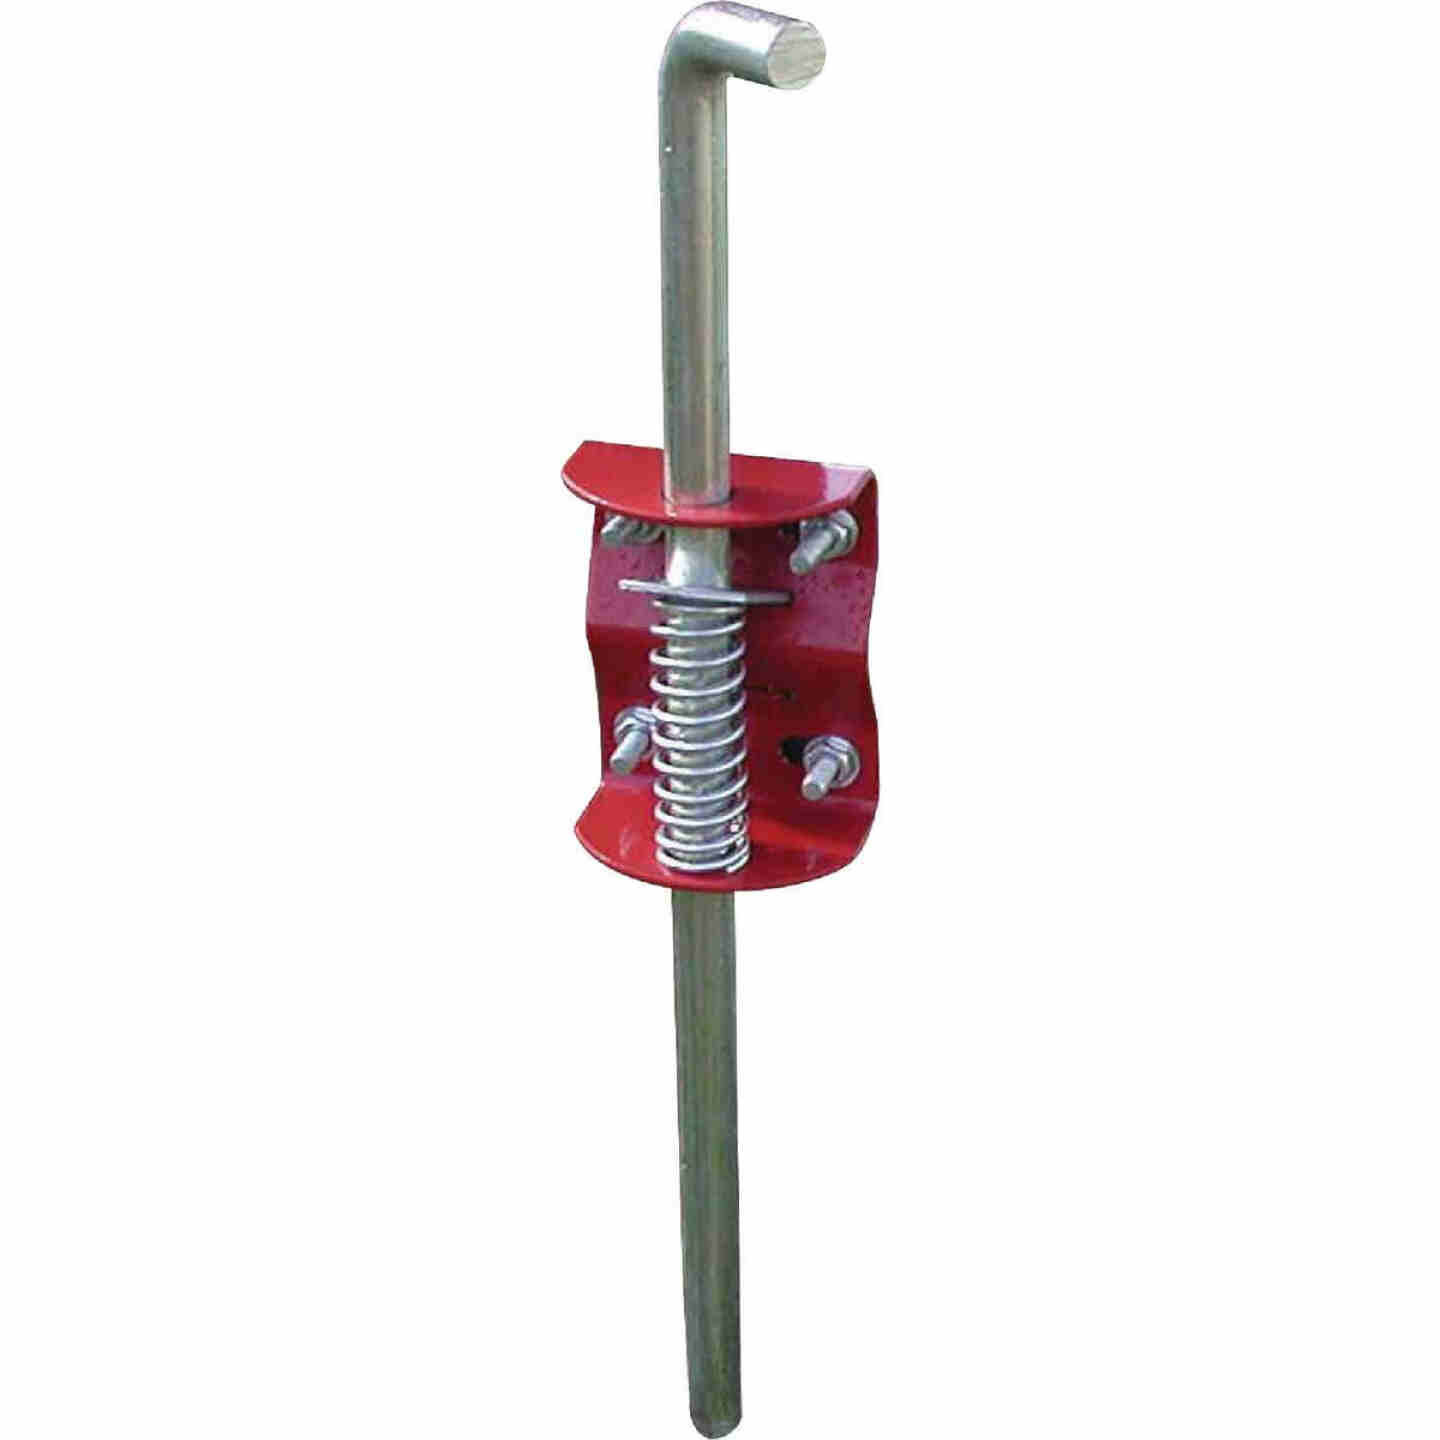 Speeco 1-3/4 In. to 2 In. Dia. Red Steel Gate Anchor Image 1